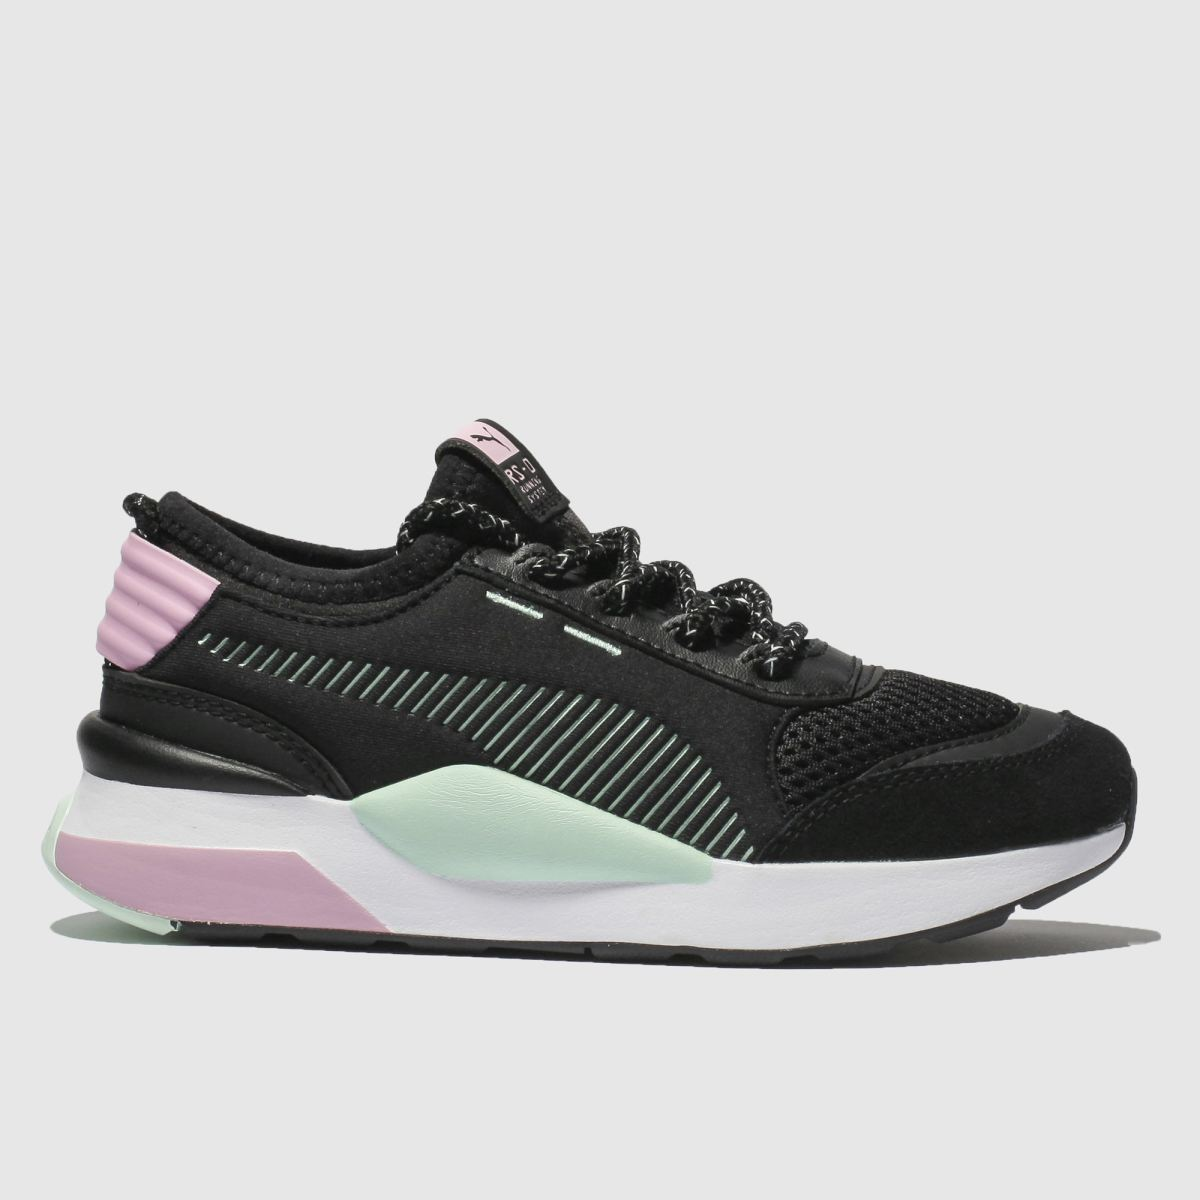 Puma Black & Pink Rs-0 Wtr Inj Toys Trainers Junior